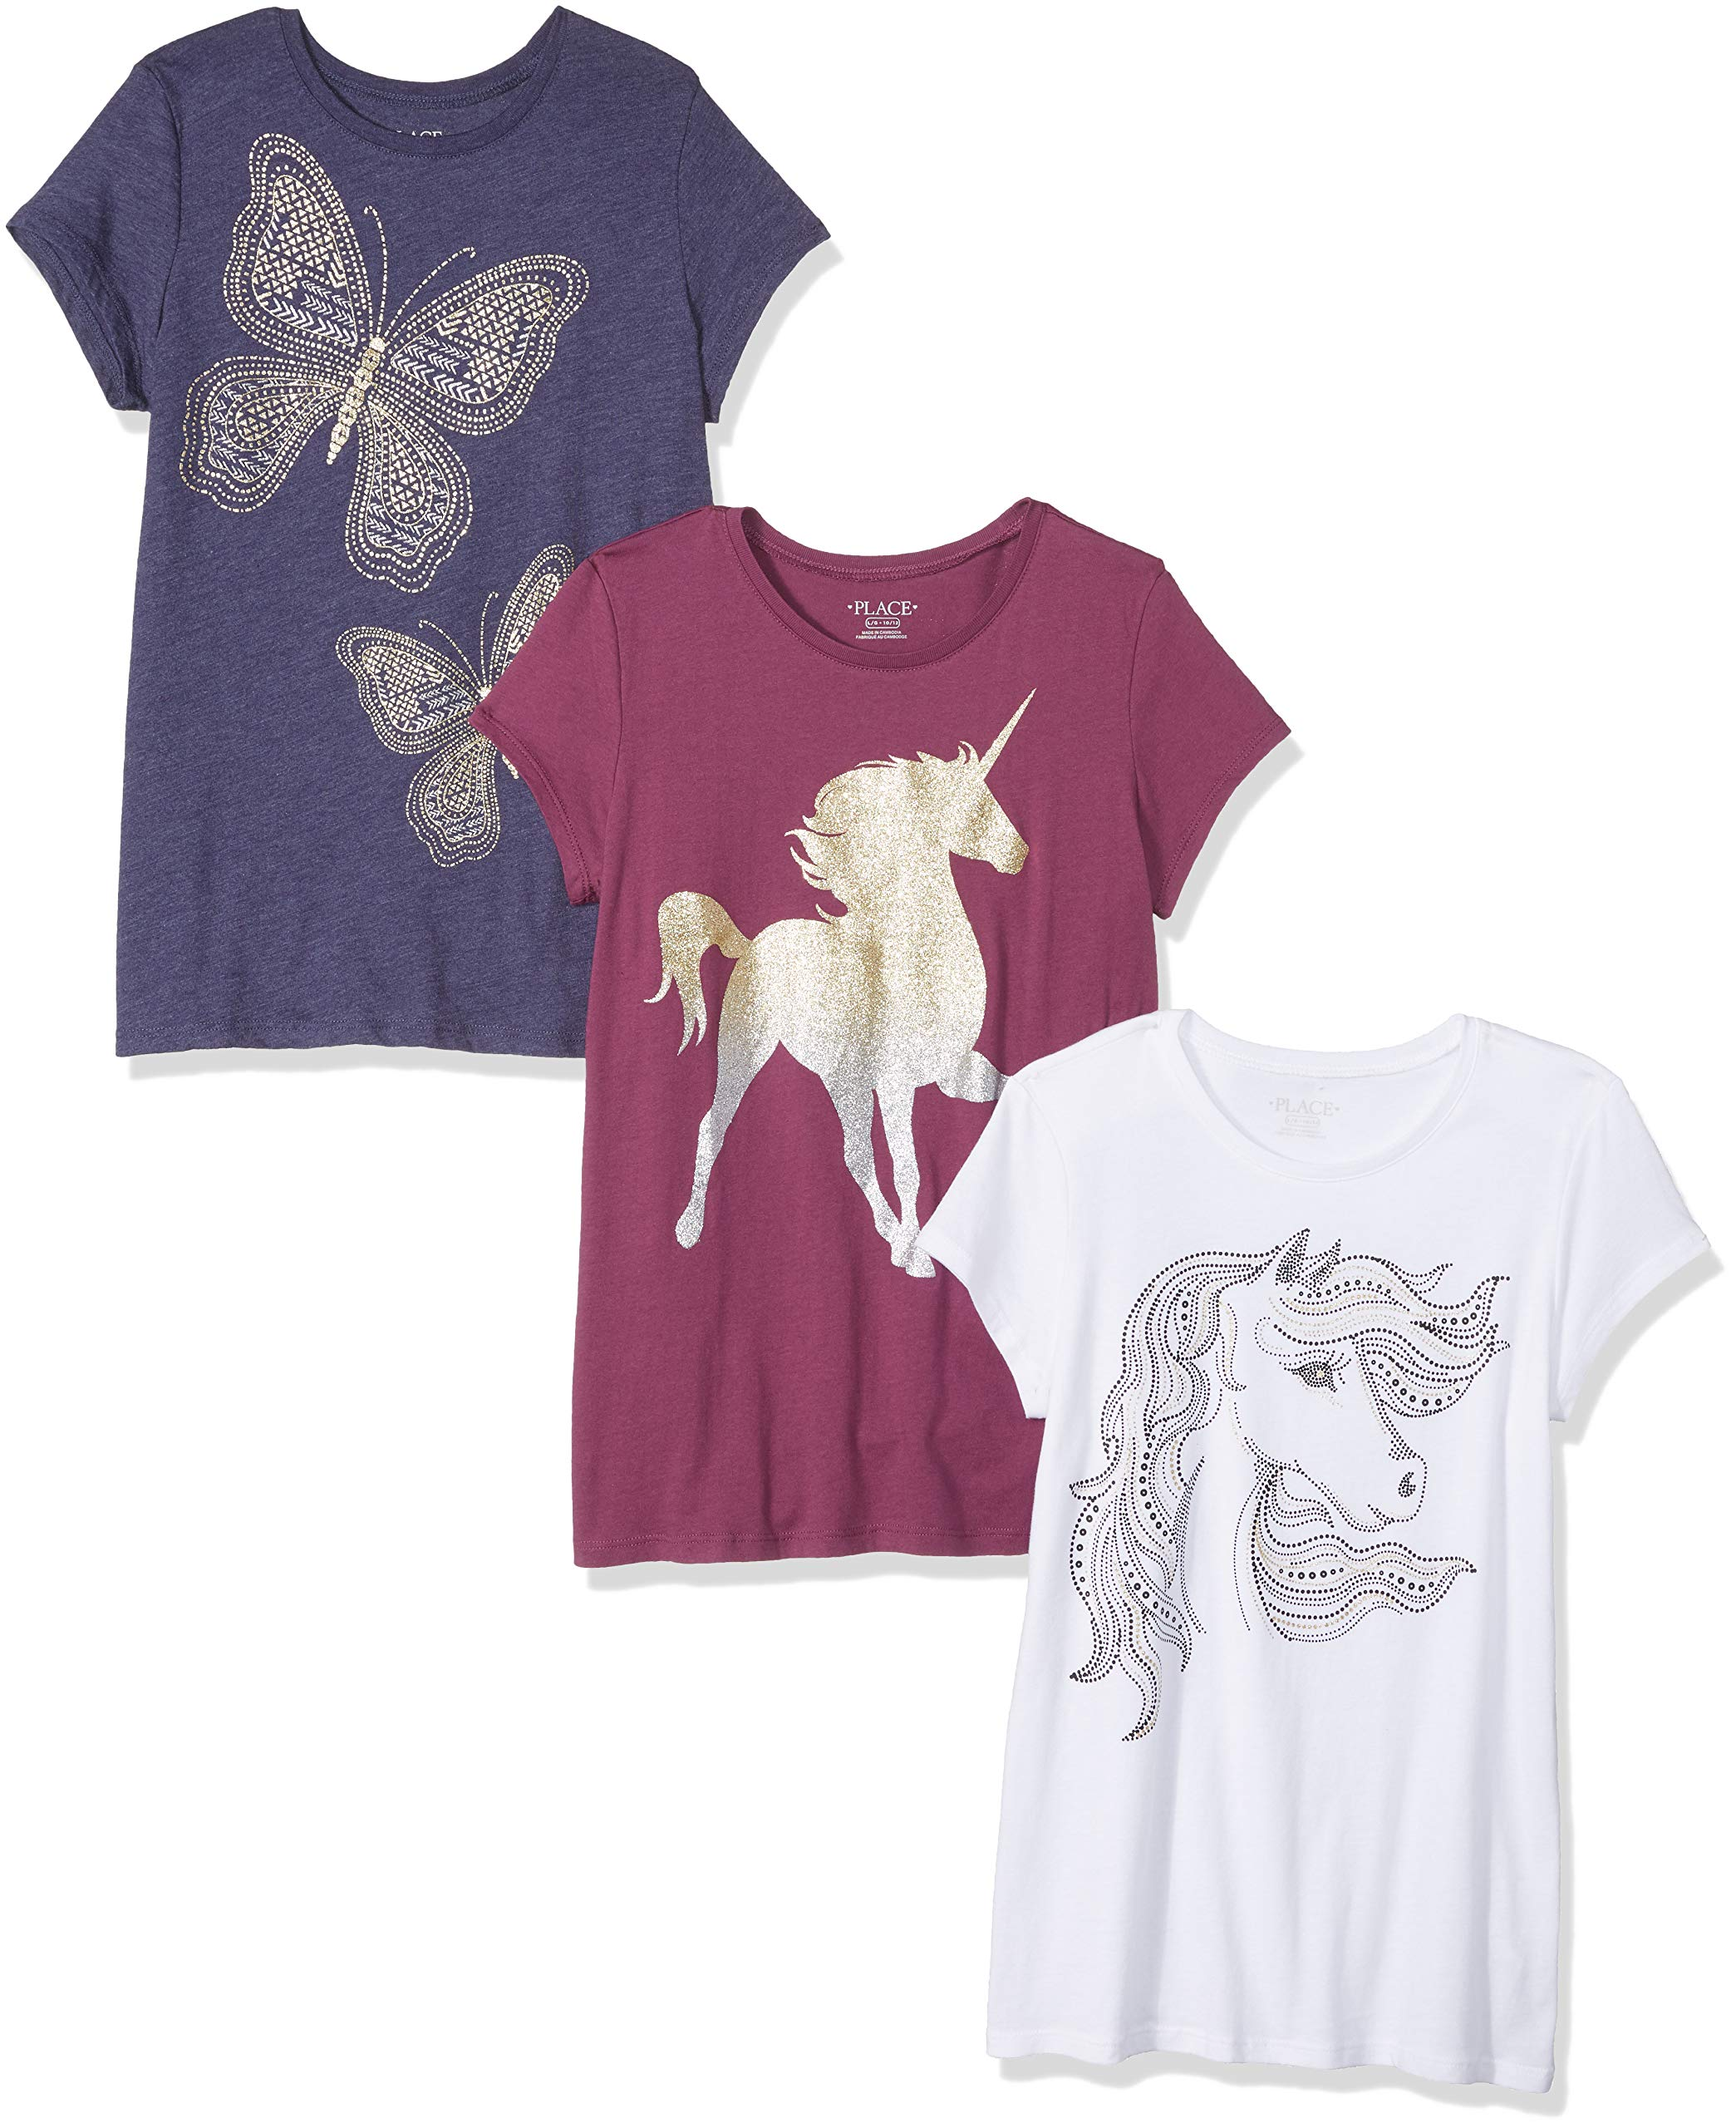 The Children's Place Girls' Big Short Sleeve Graphic Tees, Multi CLR, XL (14)